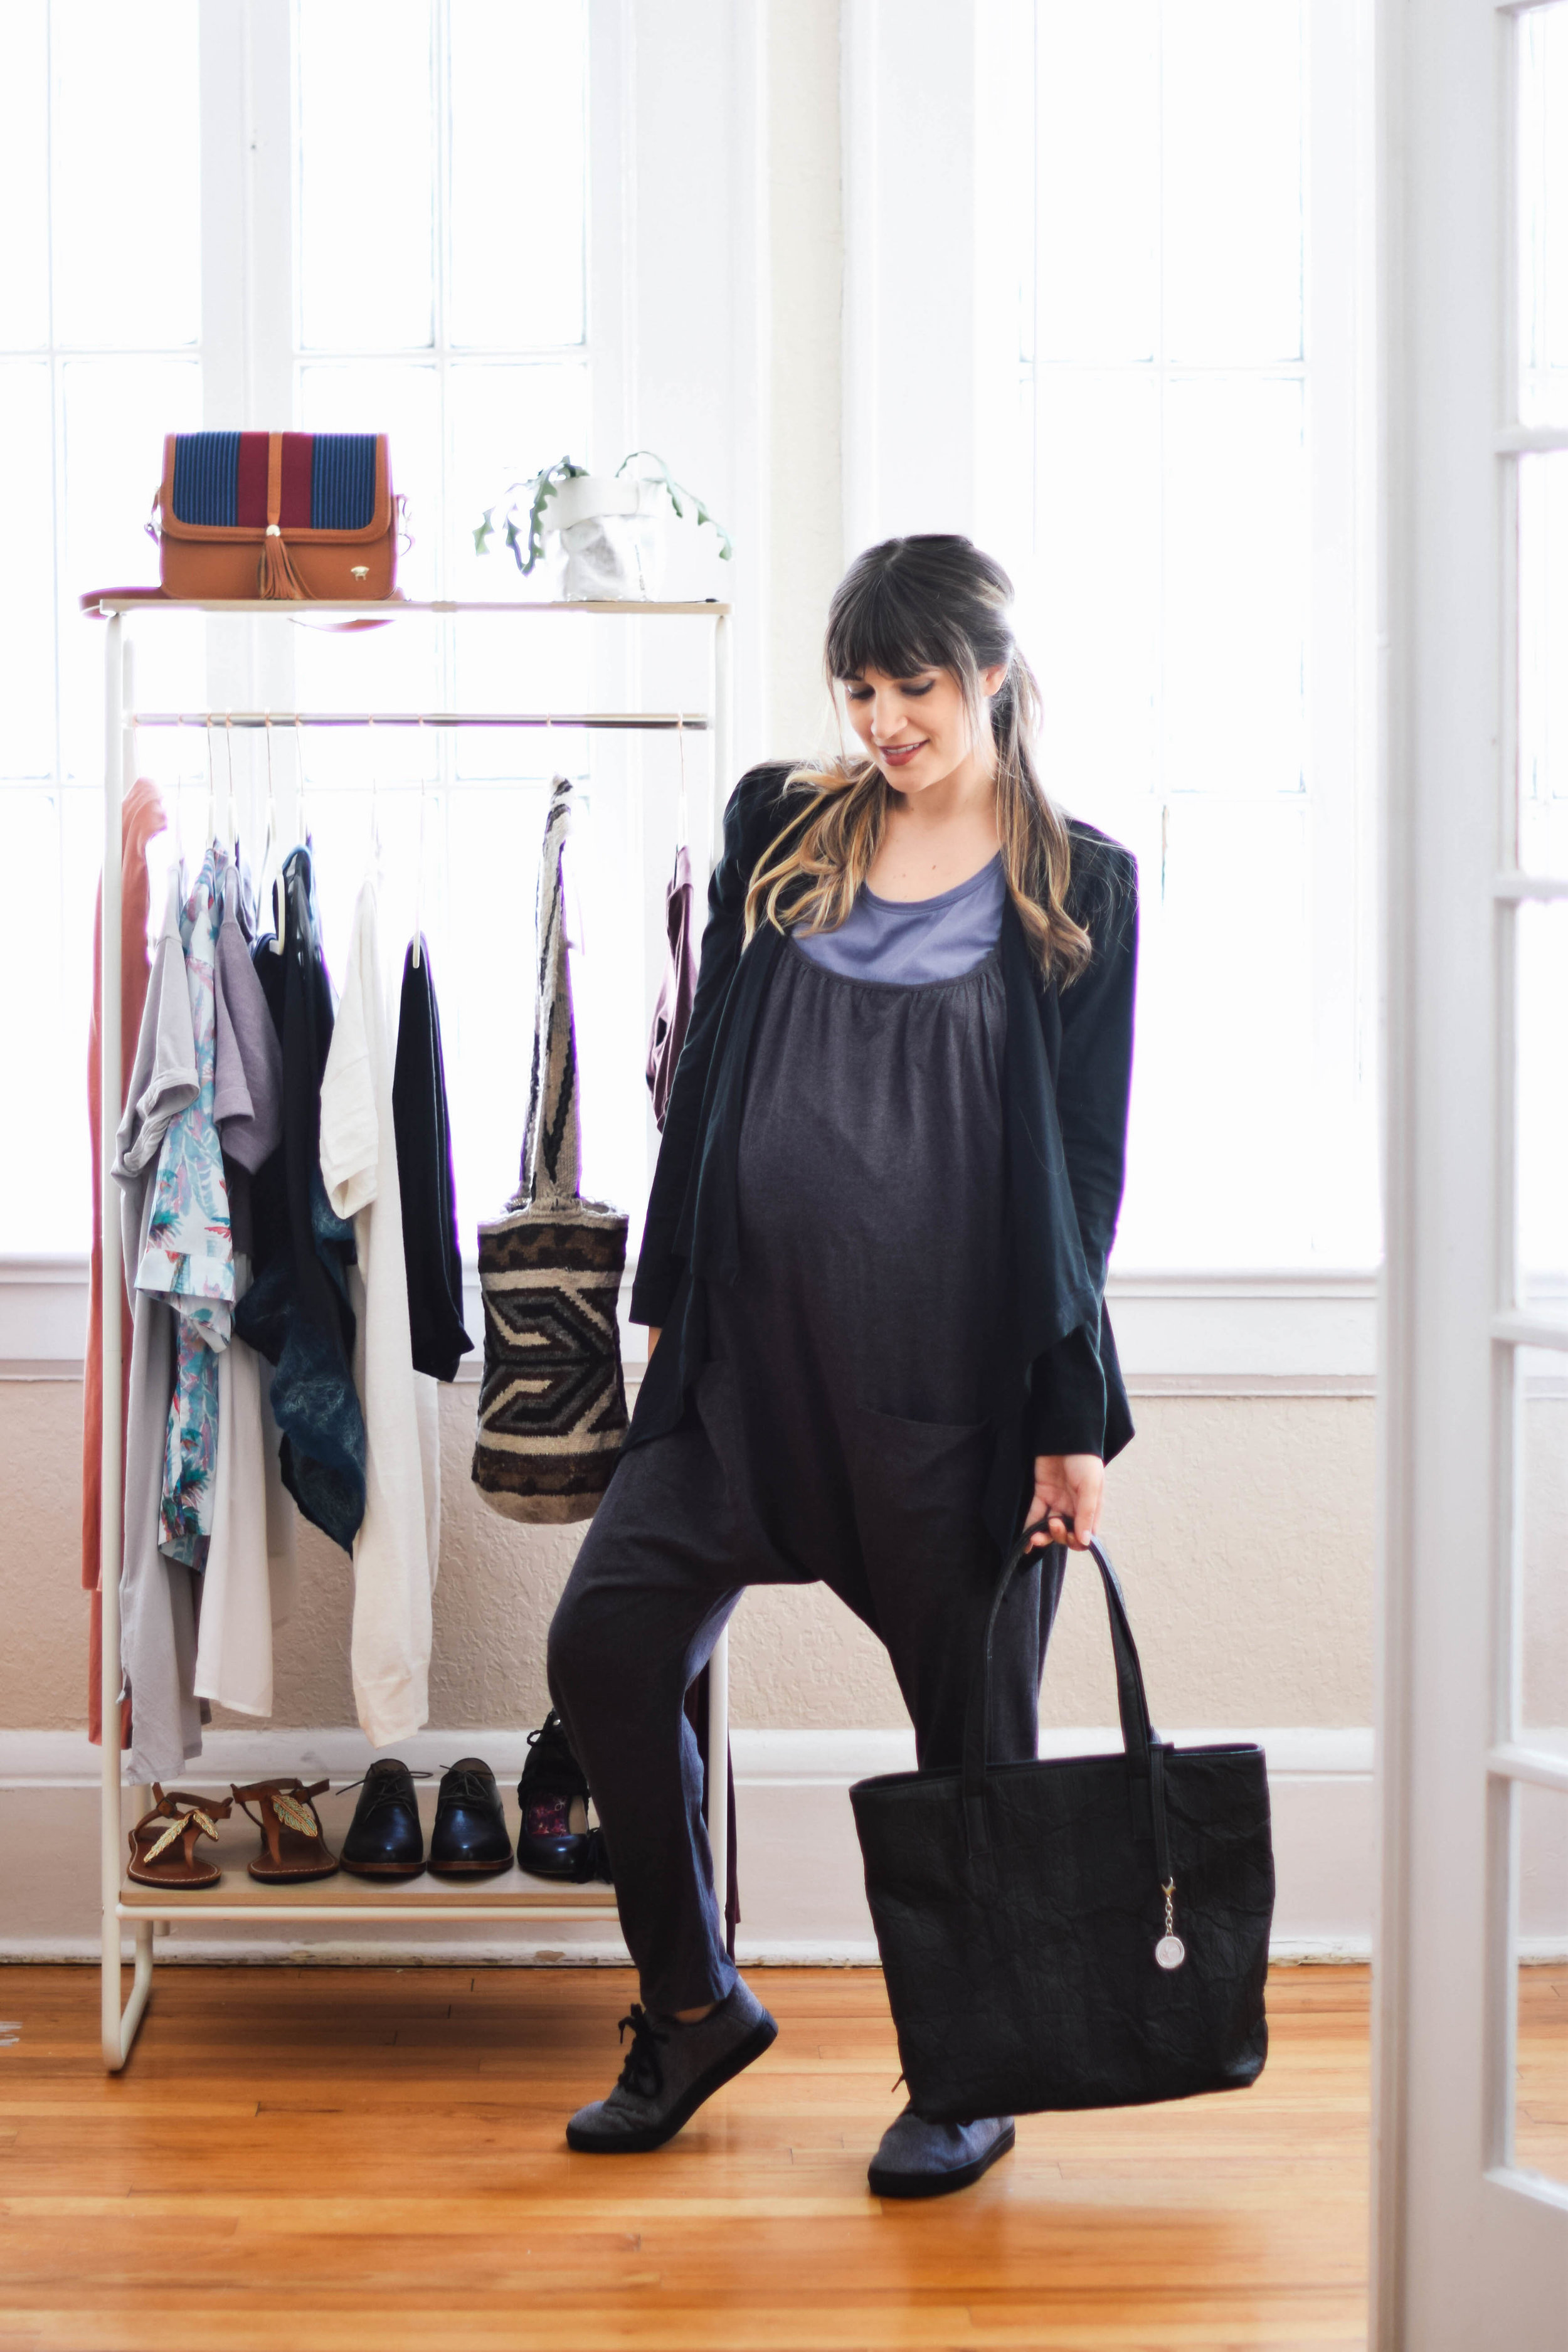 Cotton one piece jumpsuit // A Week Of Sustainable Maternity Outfits With Natalie Kay Smith From Sustainably Chic on The Good Trade